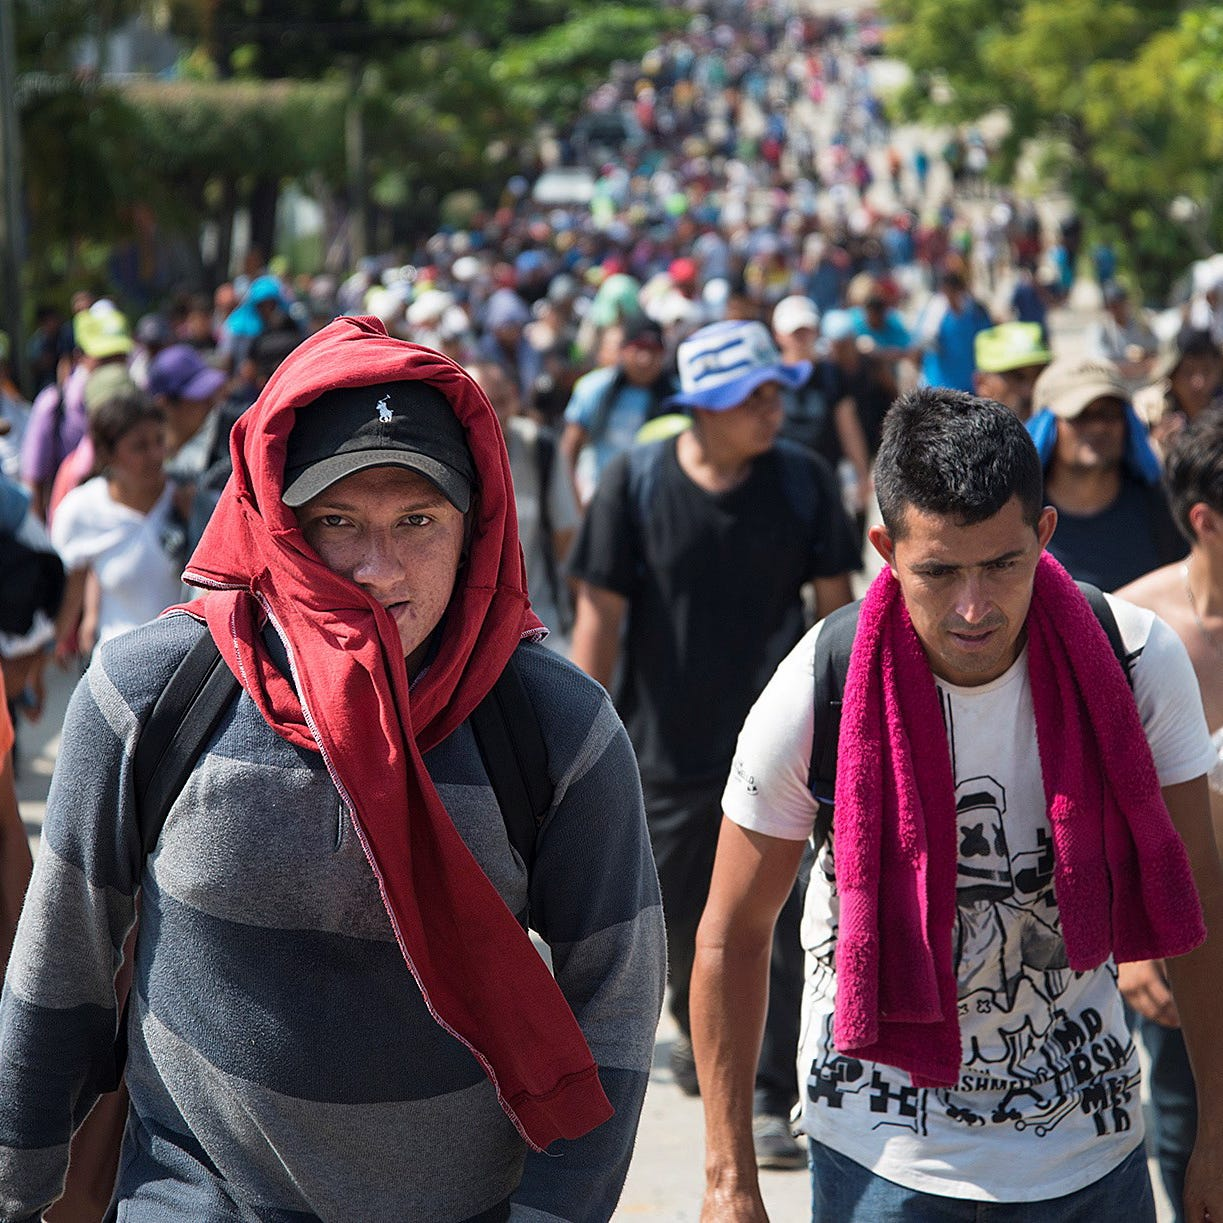 Migrant caravan numbers grow as it leaves Mexico City, appears headed to Tijuana